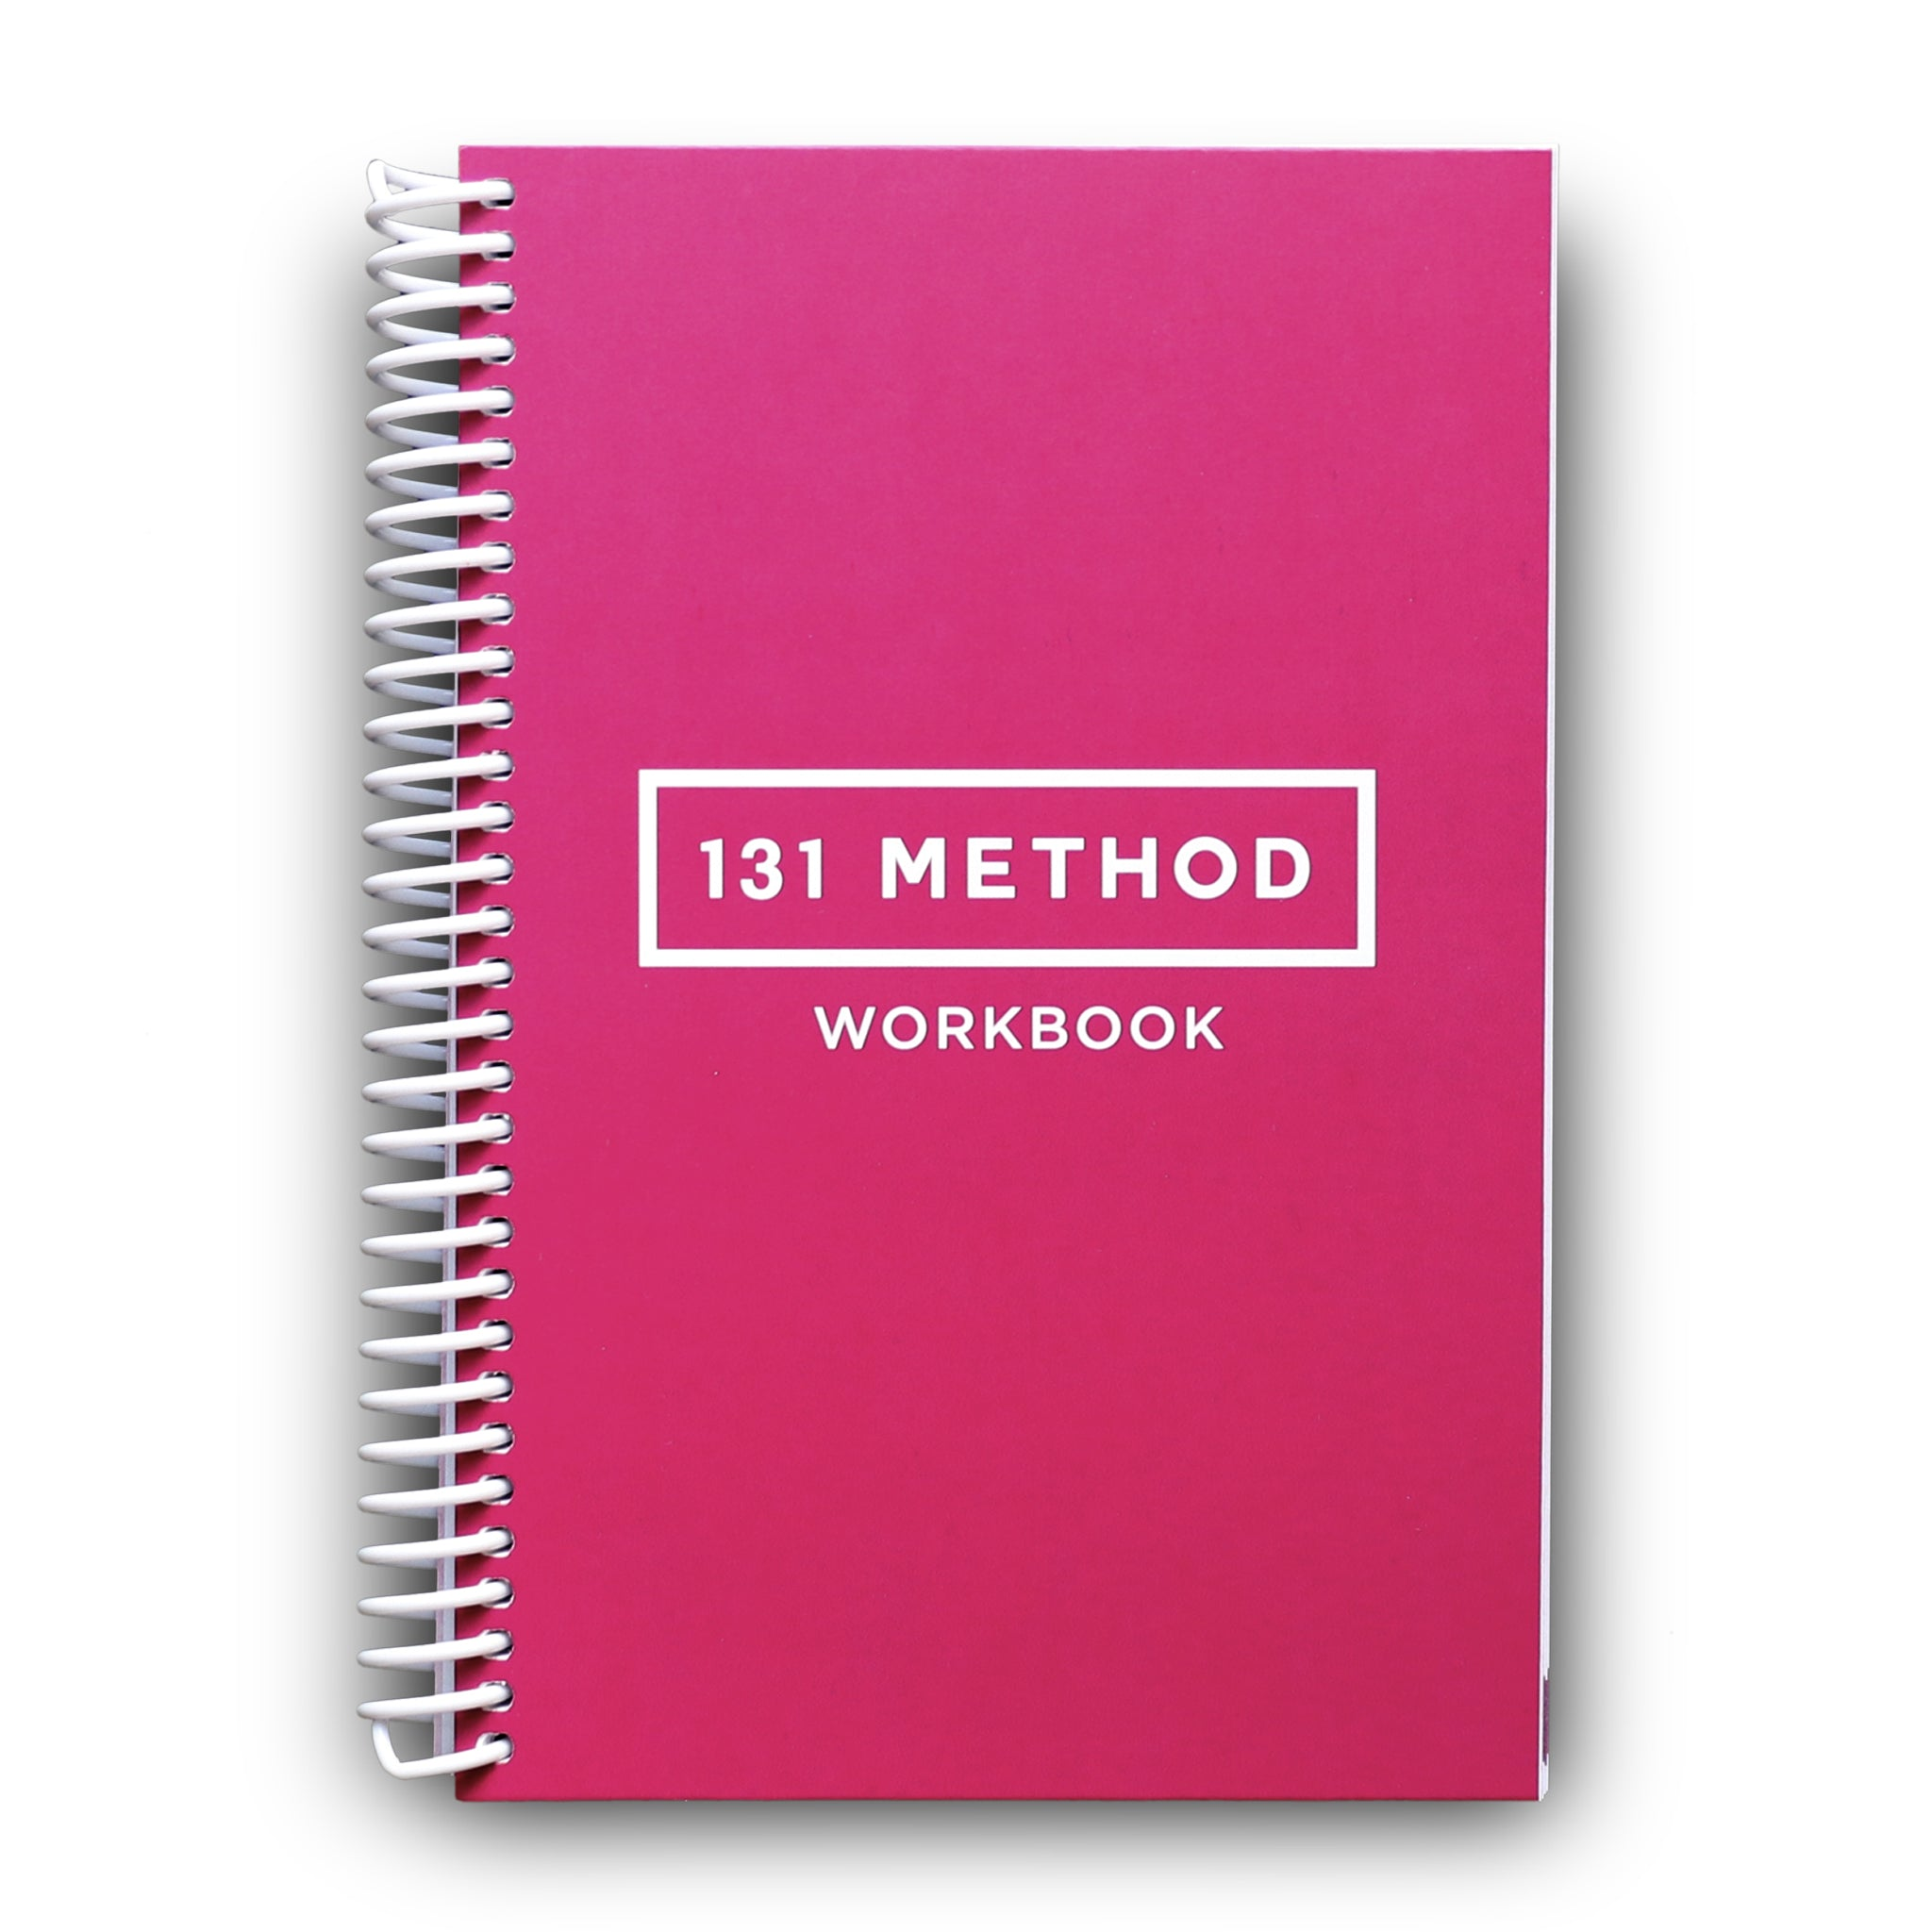 131 Method Workbook